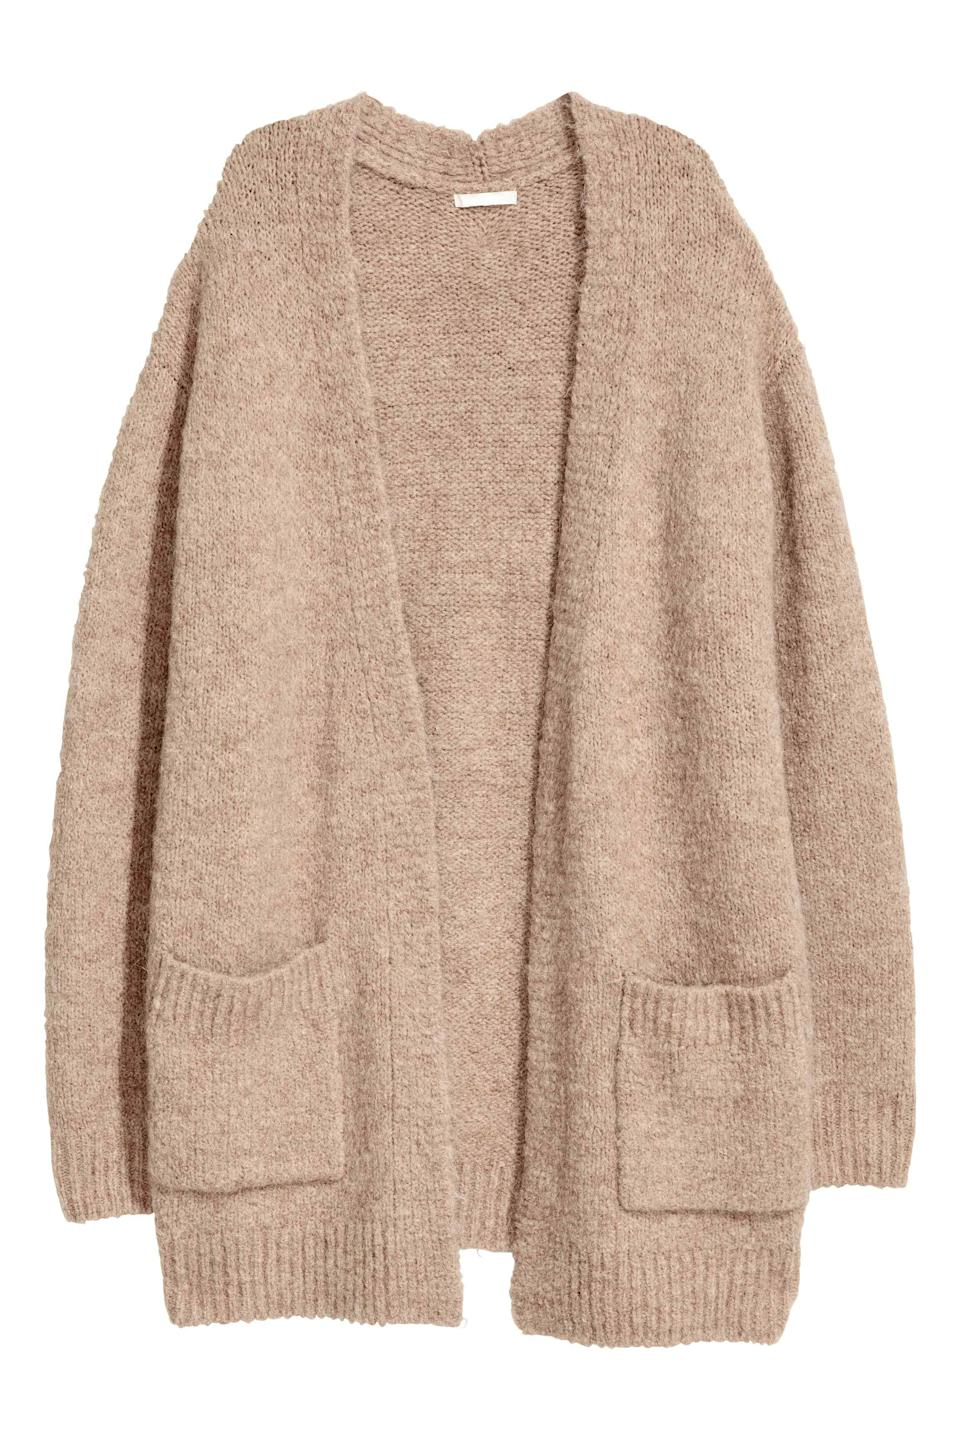 """<p>When dressing this autumn, make sure to layer up. We'll be teaming this oatmeal-hued knit with a crisp white shirt and checked coat. Don't forget the loafers! <em><a rel=""""nofollow noopener"""" href=""""http://www2.hm.com/en_gb/productpage.0519773002.html"""" target=""""_blank"""" data-ylk=""""slk:H&M"""" class=""""link rapid-noclick-resp"""">H&M</a>, £24.99</em> </p>"""